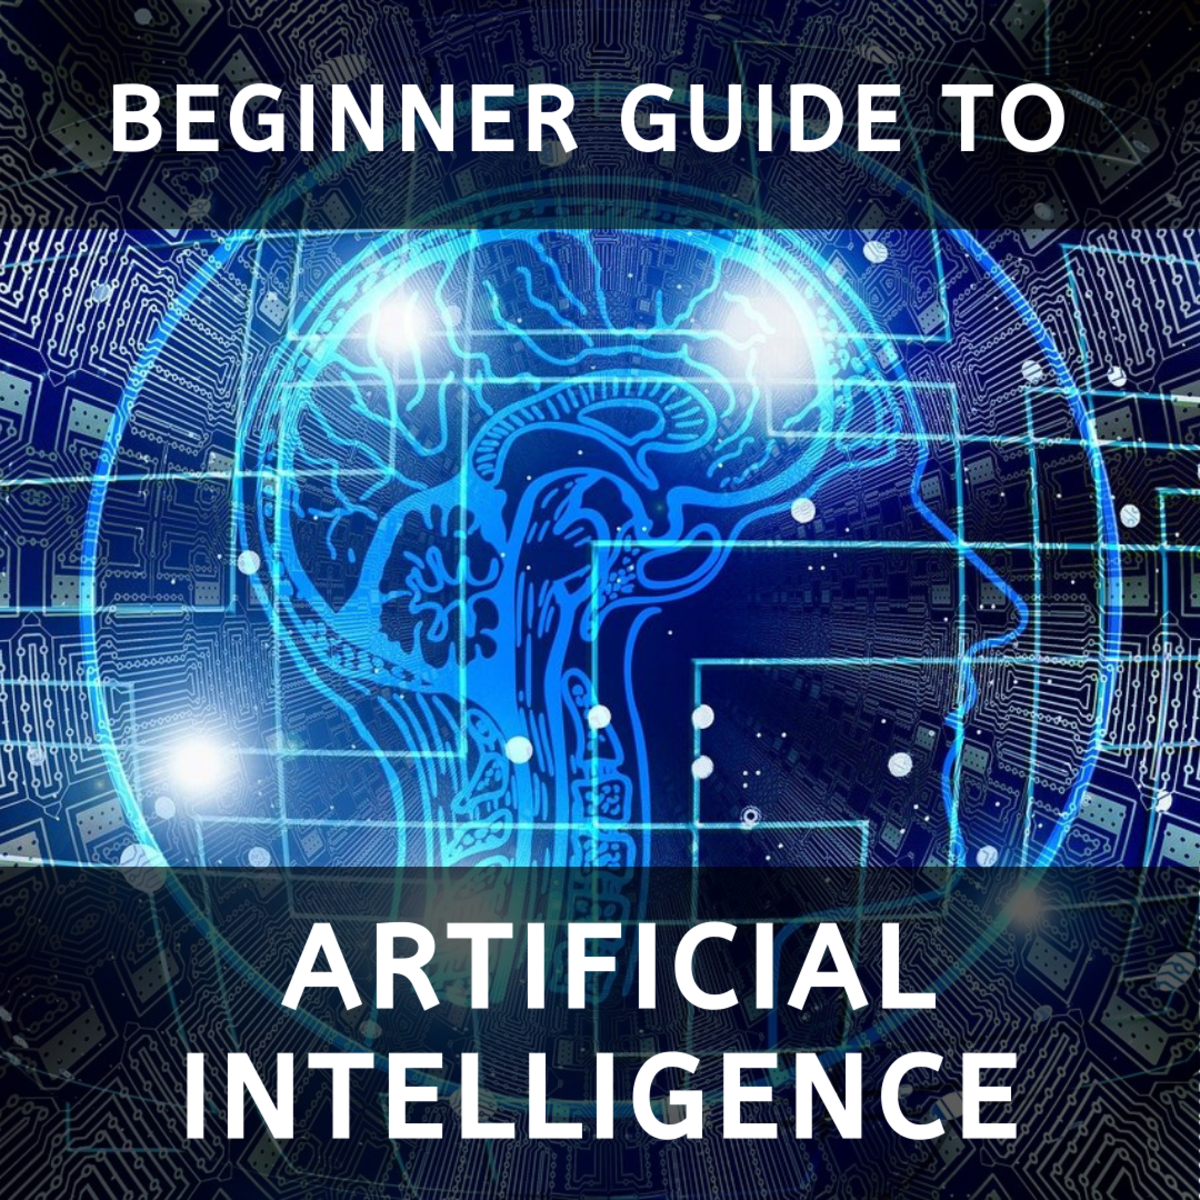 A beginner-friendly guide to Artificial Intelligence